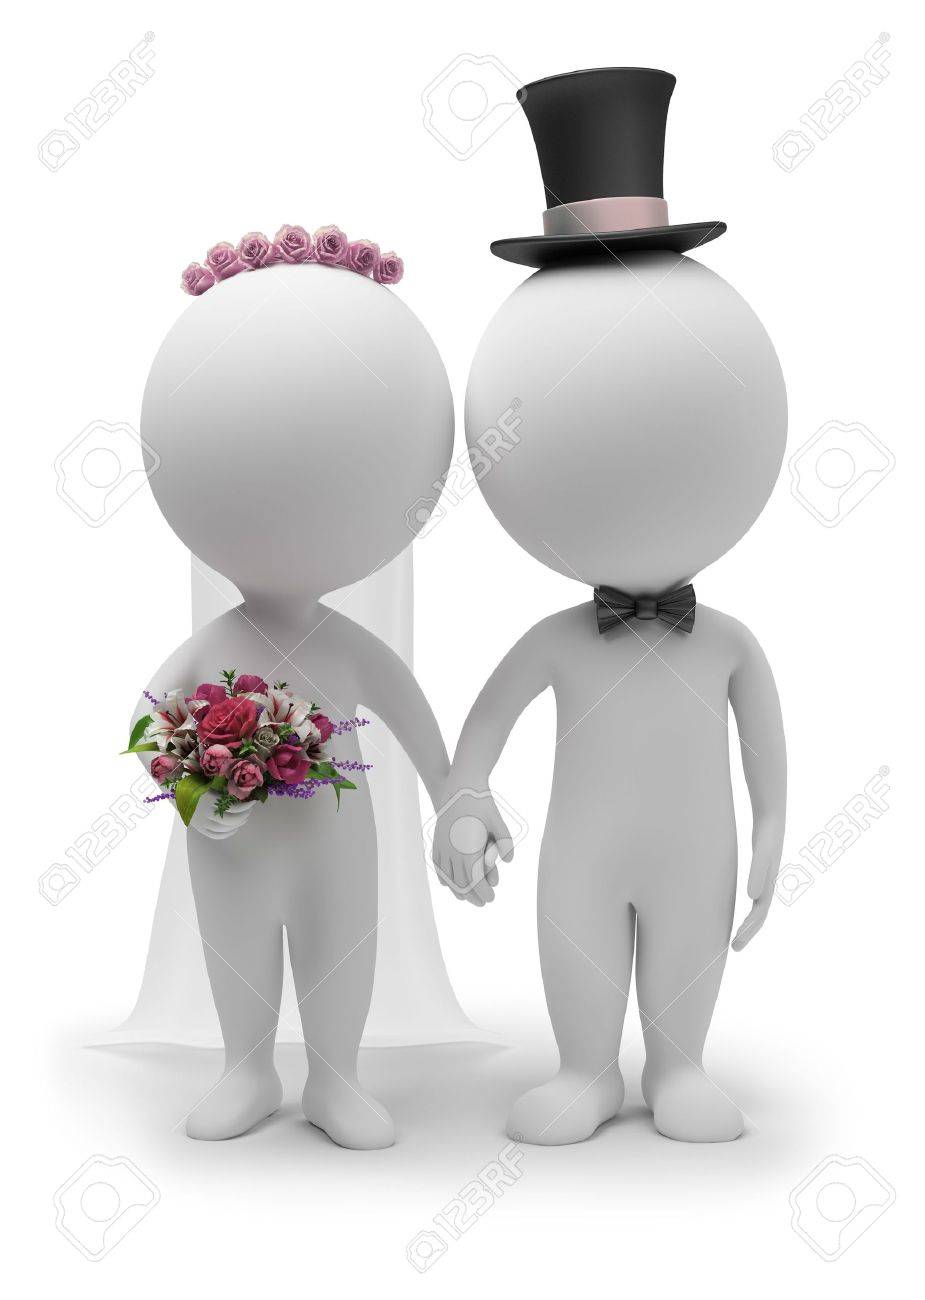 Men holding the word party concept 3d illustration stock photo - Small People 3d Small People Wedding Of The Groom And The Bride 3d